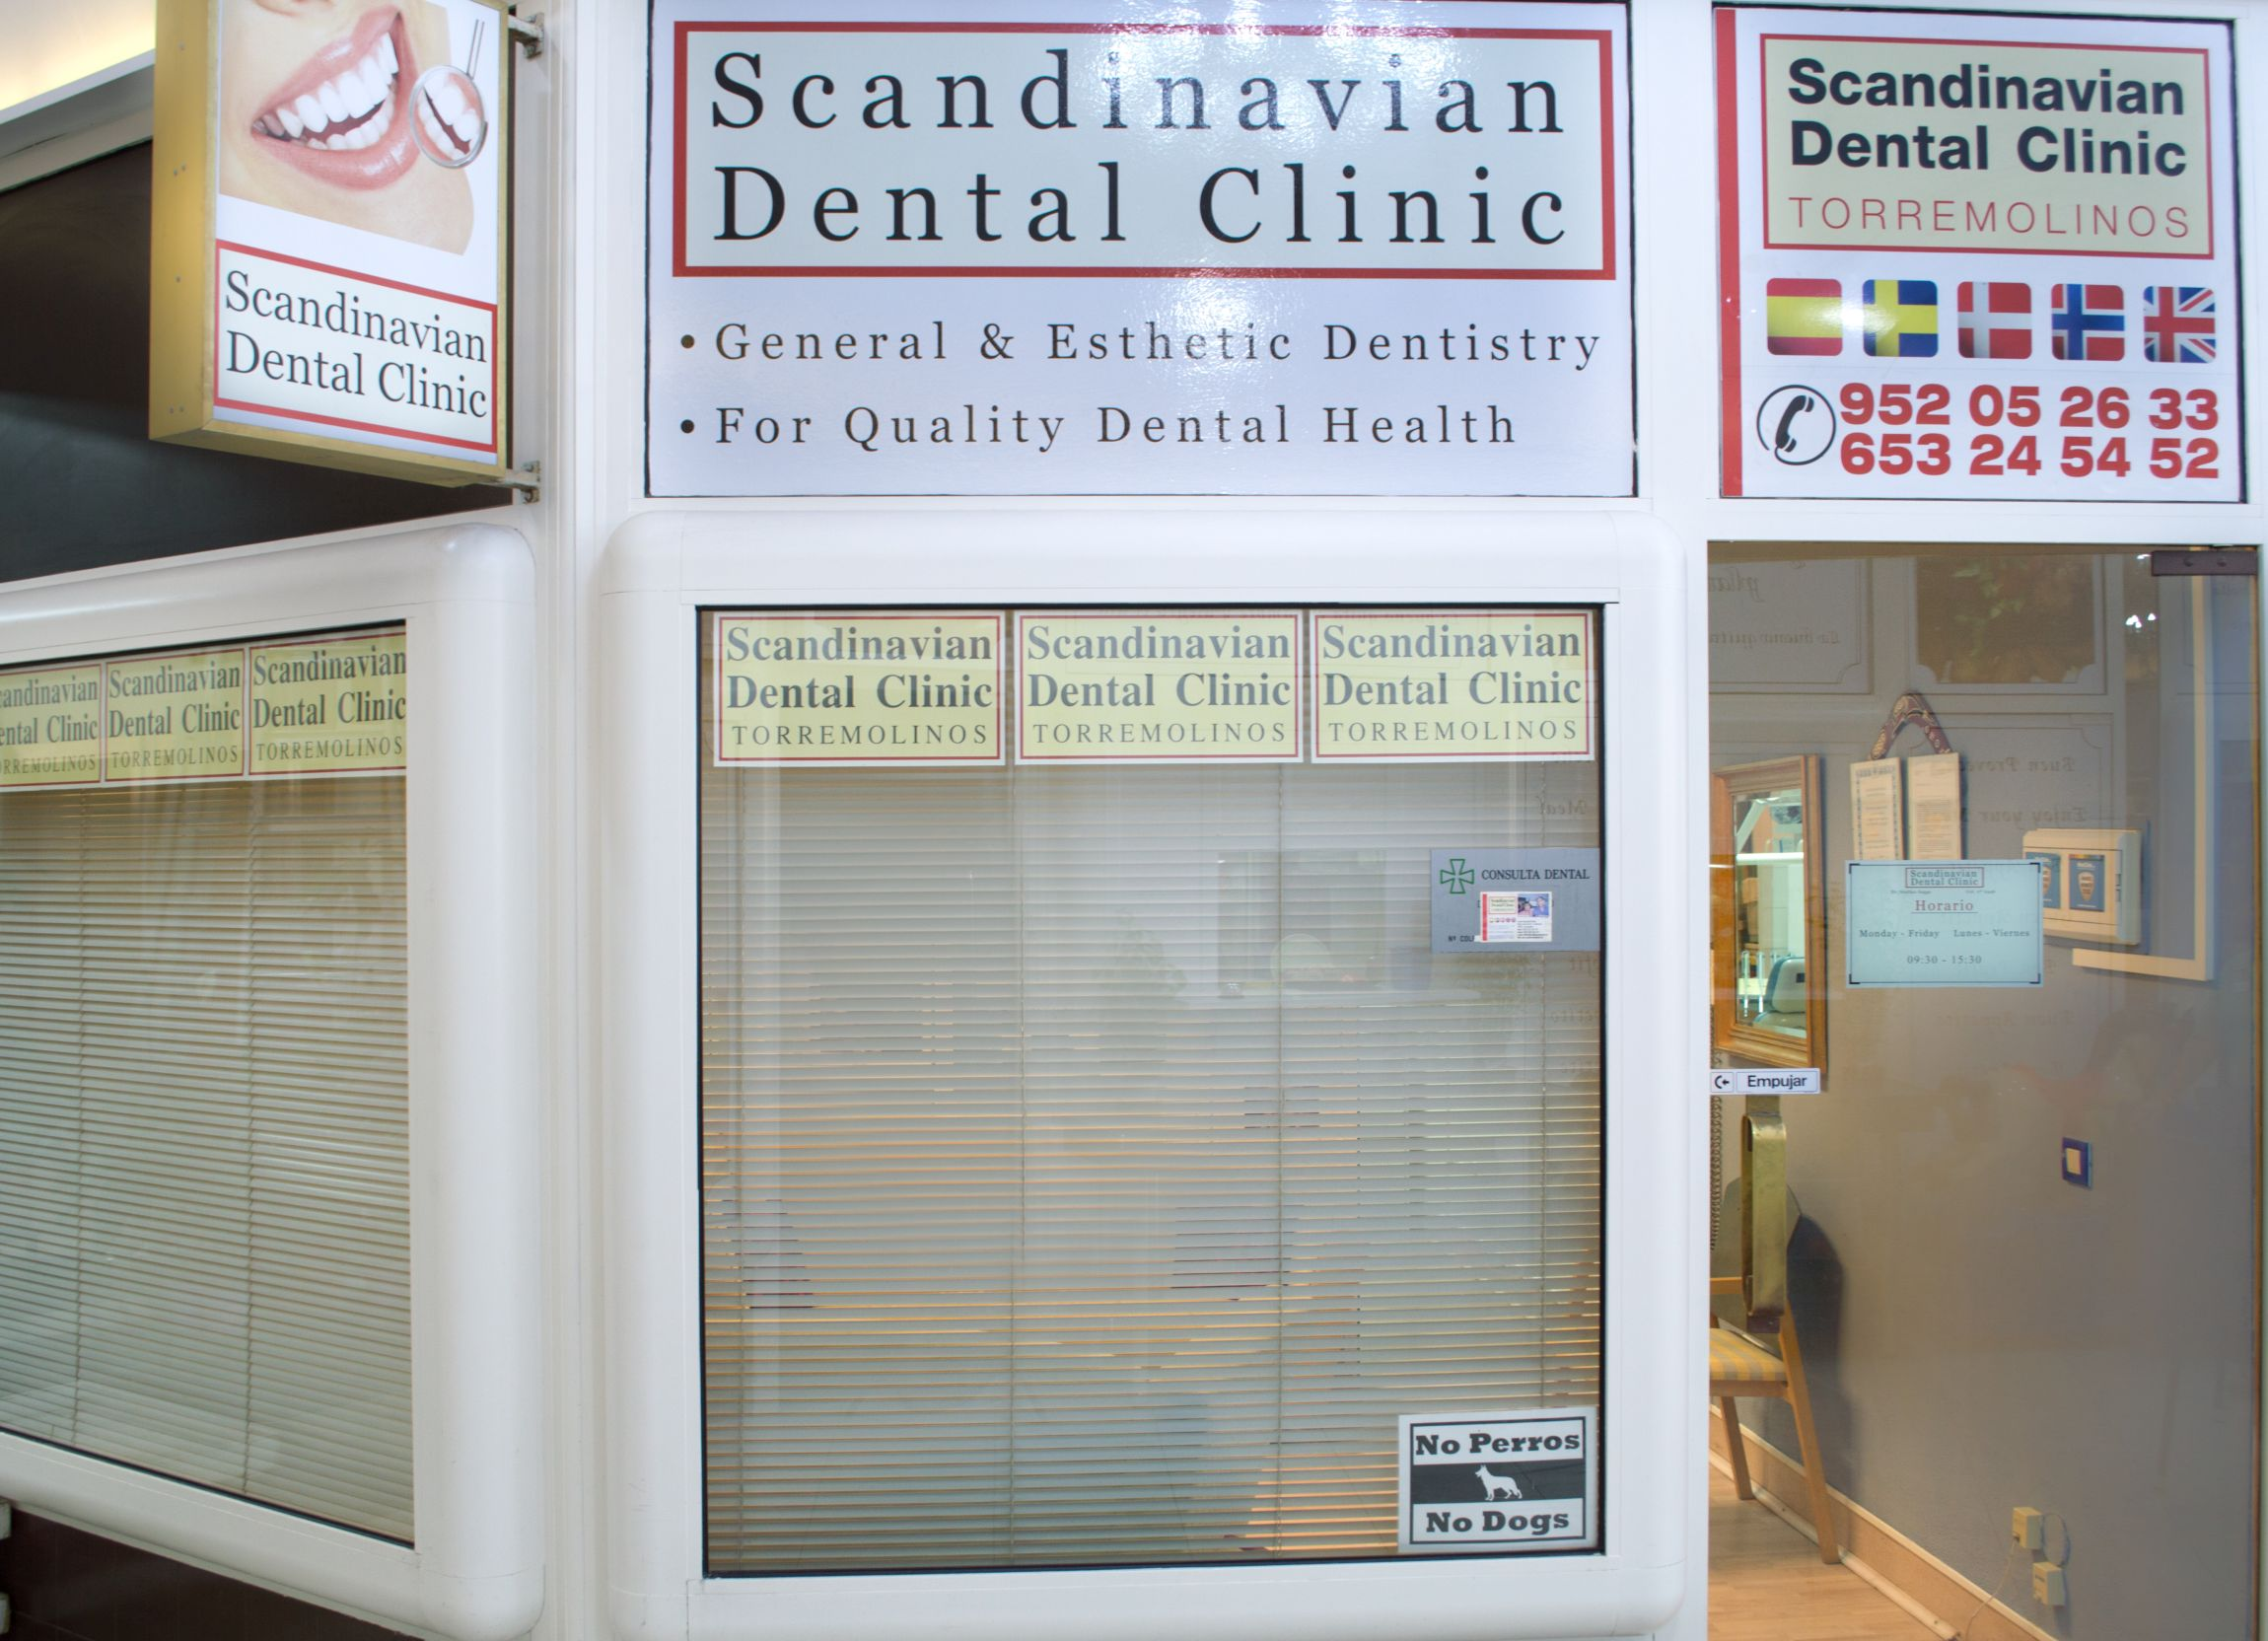 Scandinavian Dental Clinic Location